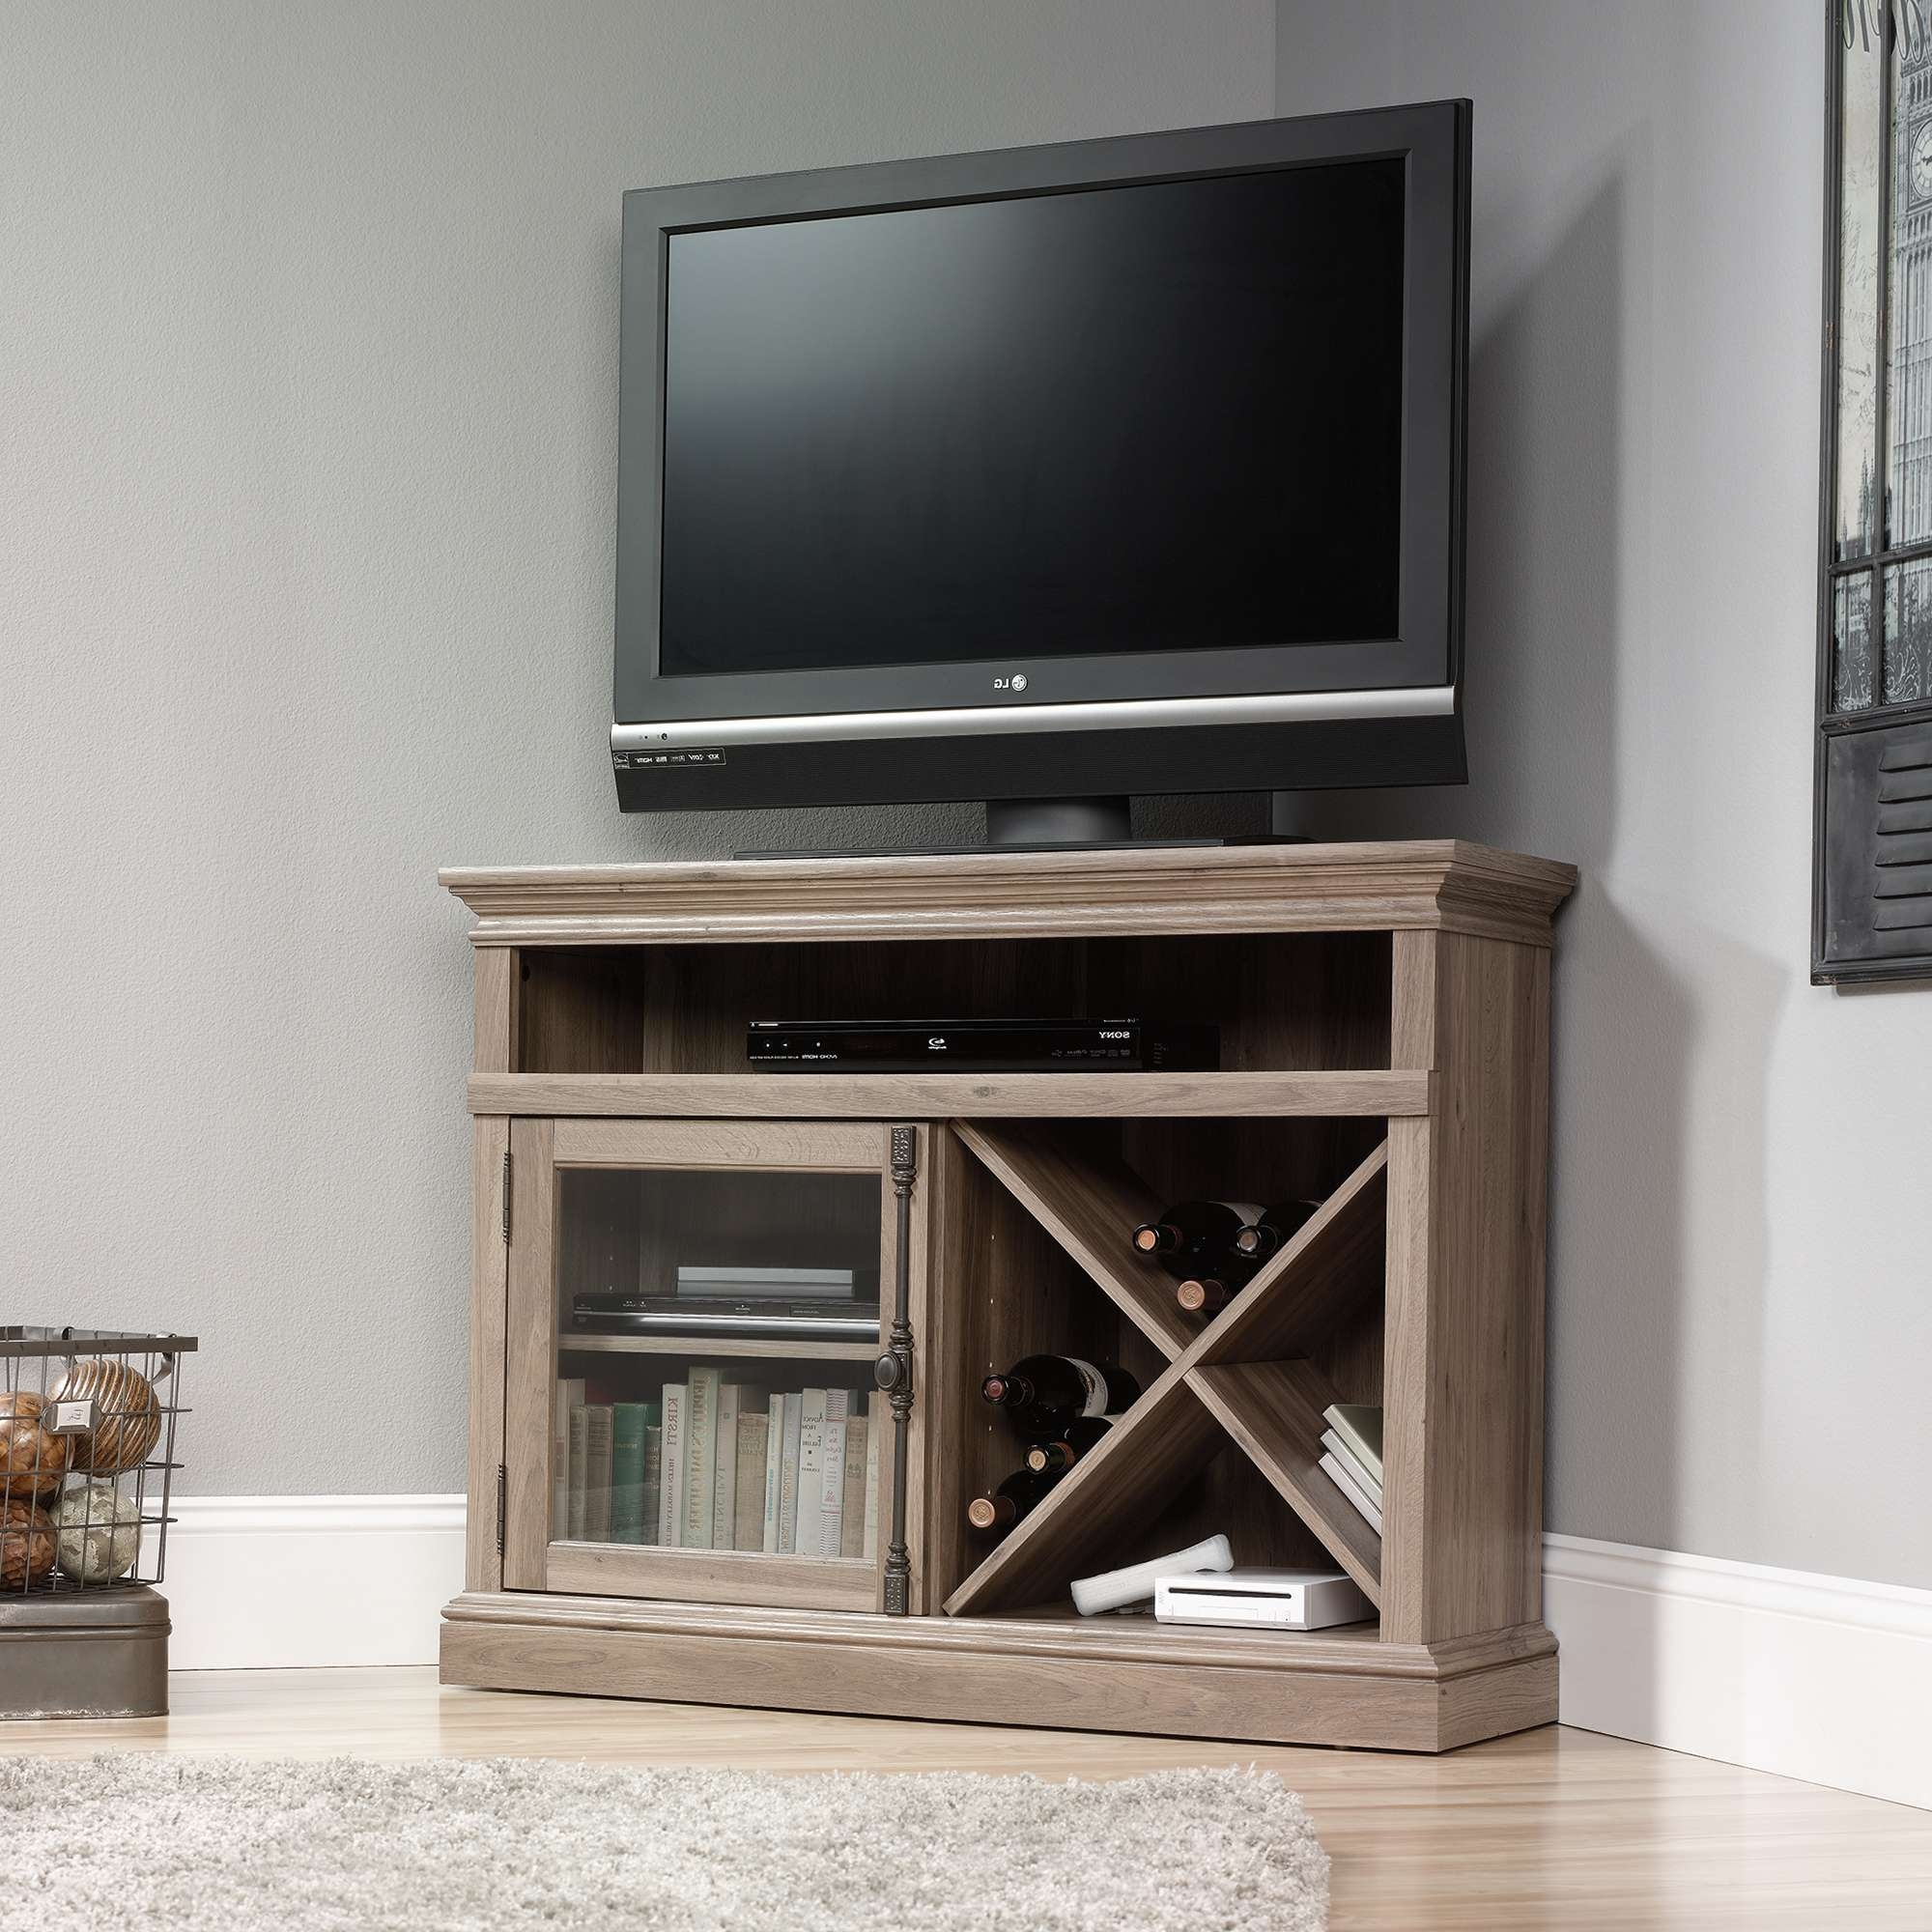 Barrister Lane | Corner Tv Stand | 414729 | Sauder Regarding Corner Tv Stands (View 2 of 15)